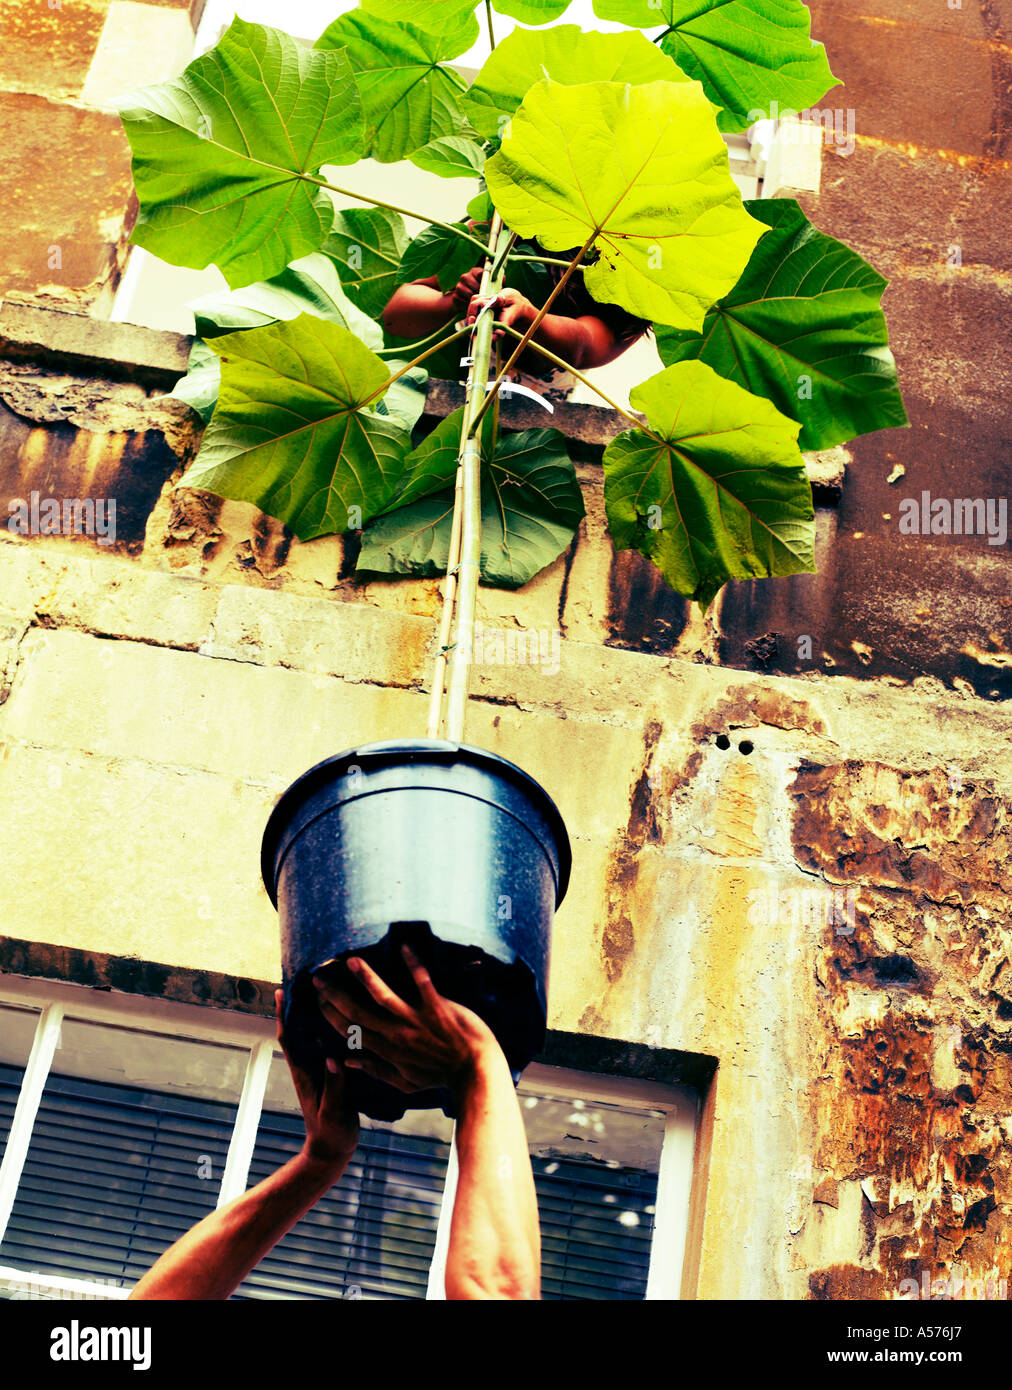 Couple passing a plant out of a window - Stock Image